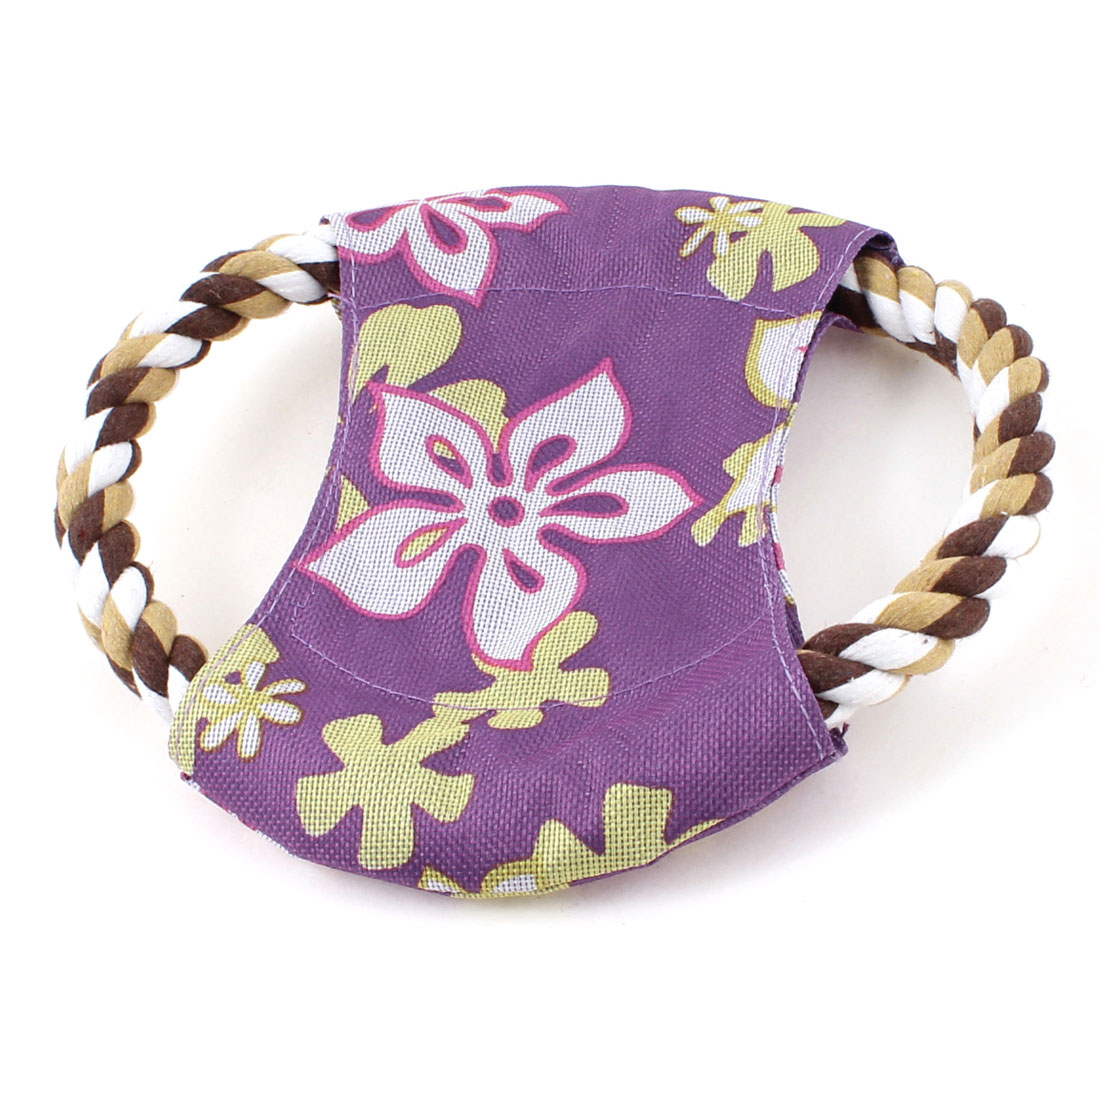 Twister Colors Rope Purple Flower Print Exercising Flying Frisbee Toy for Pet Doggie